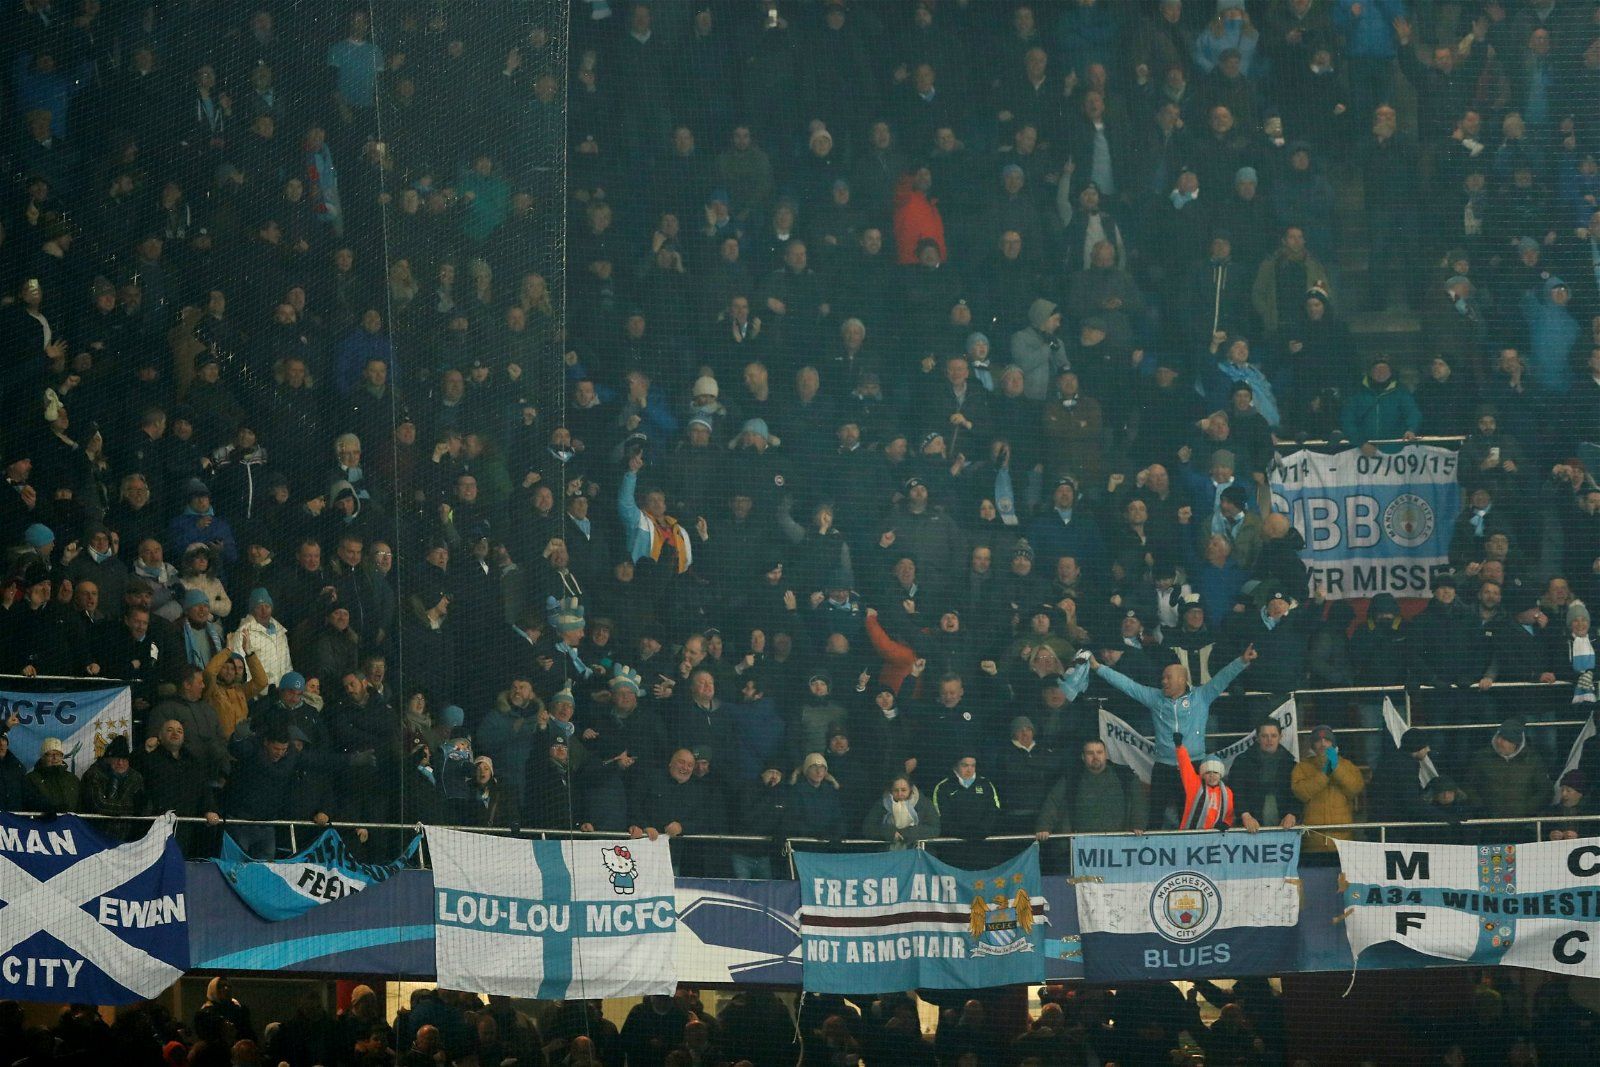 Man City fans Champions League